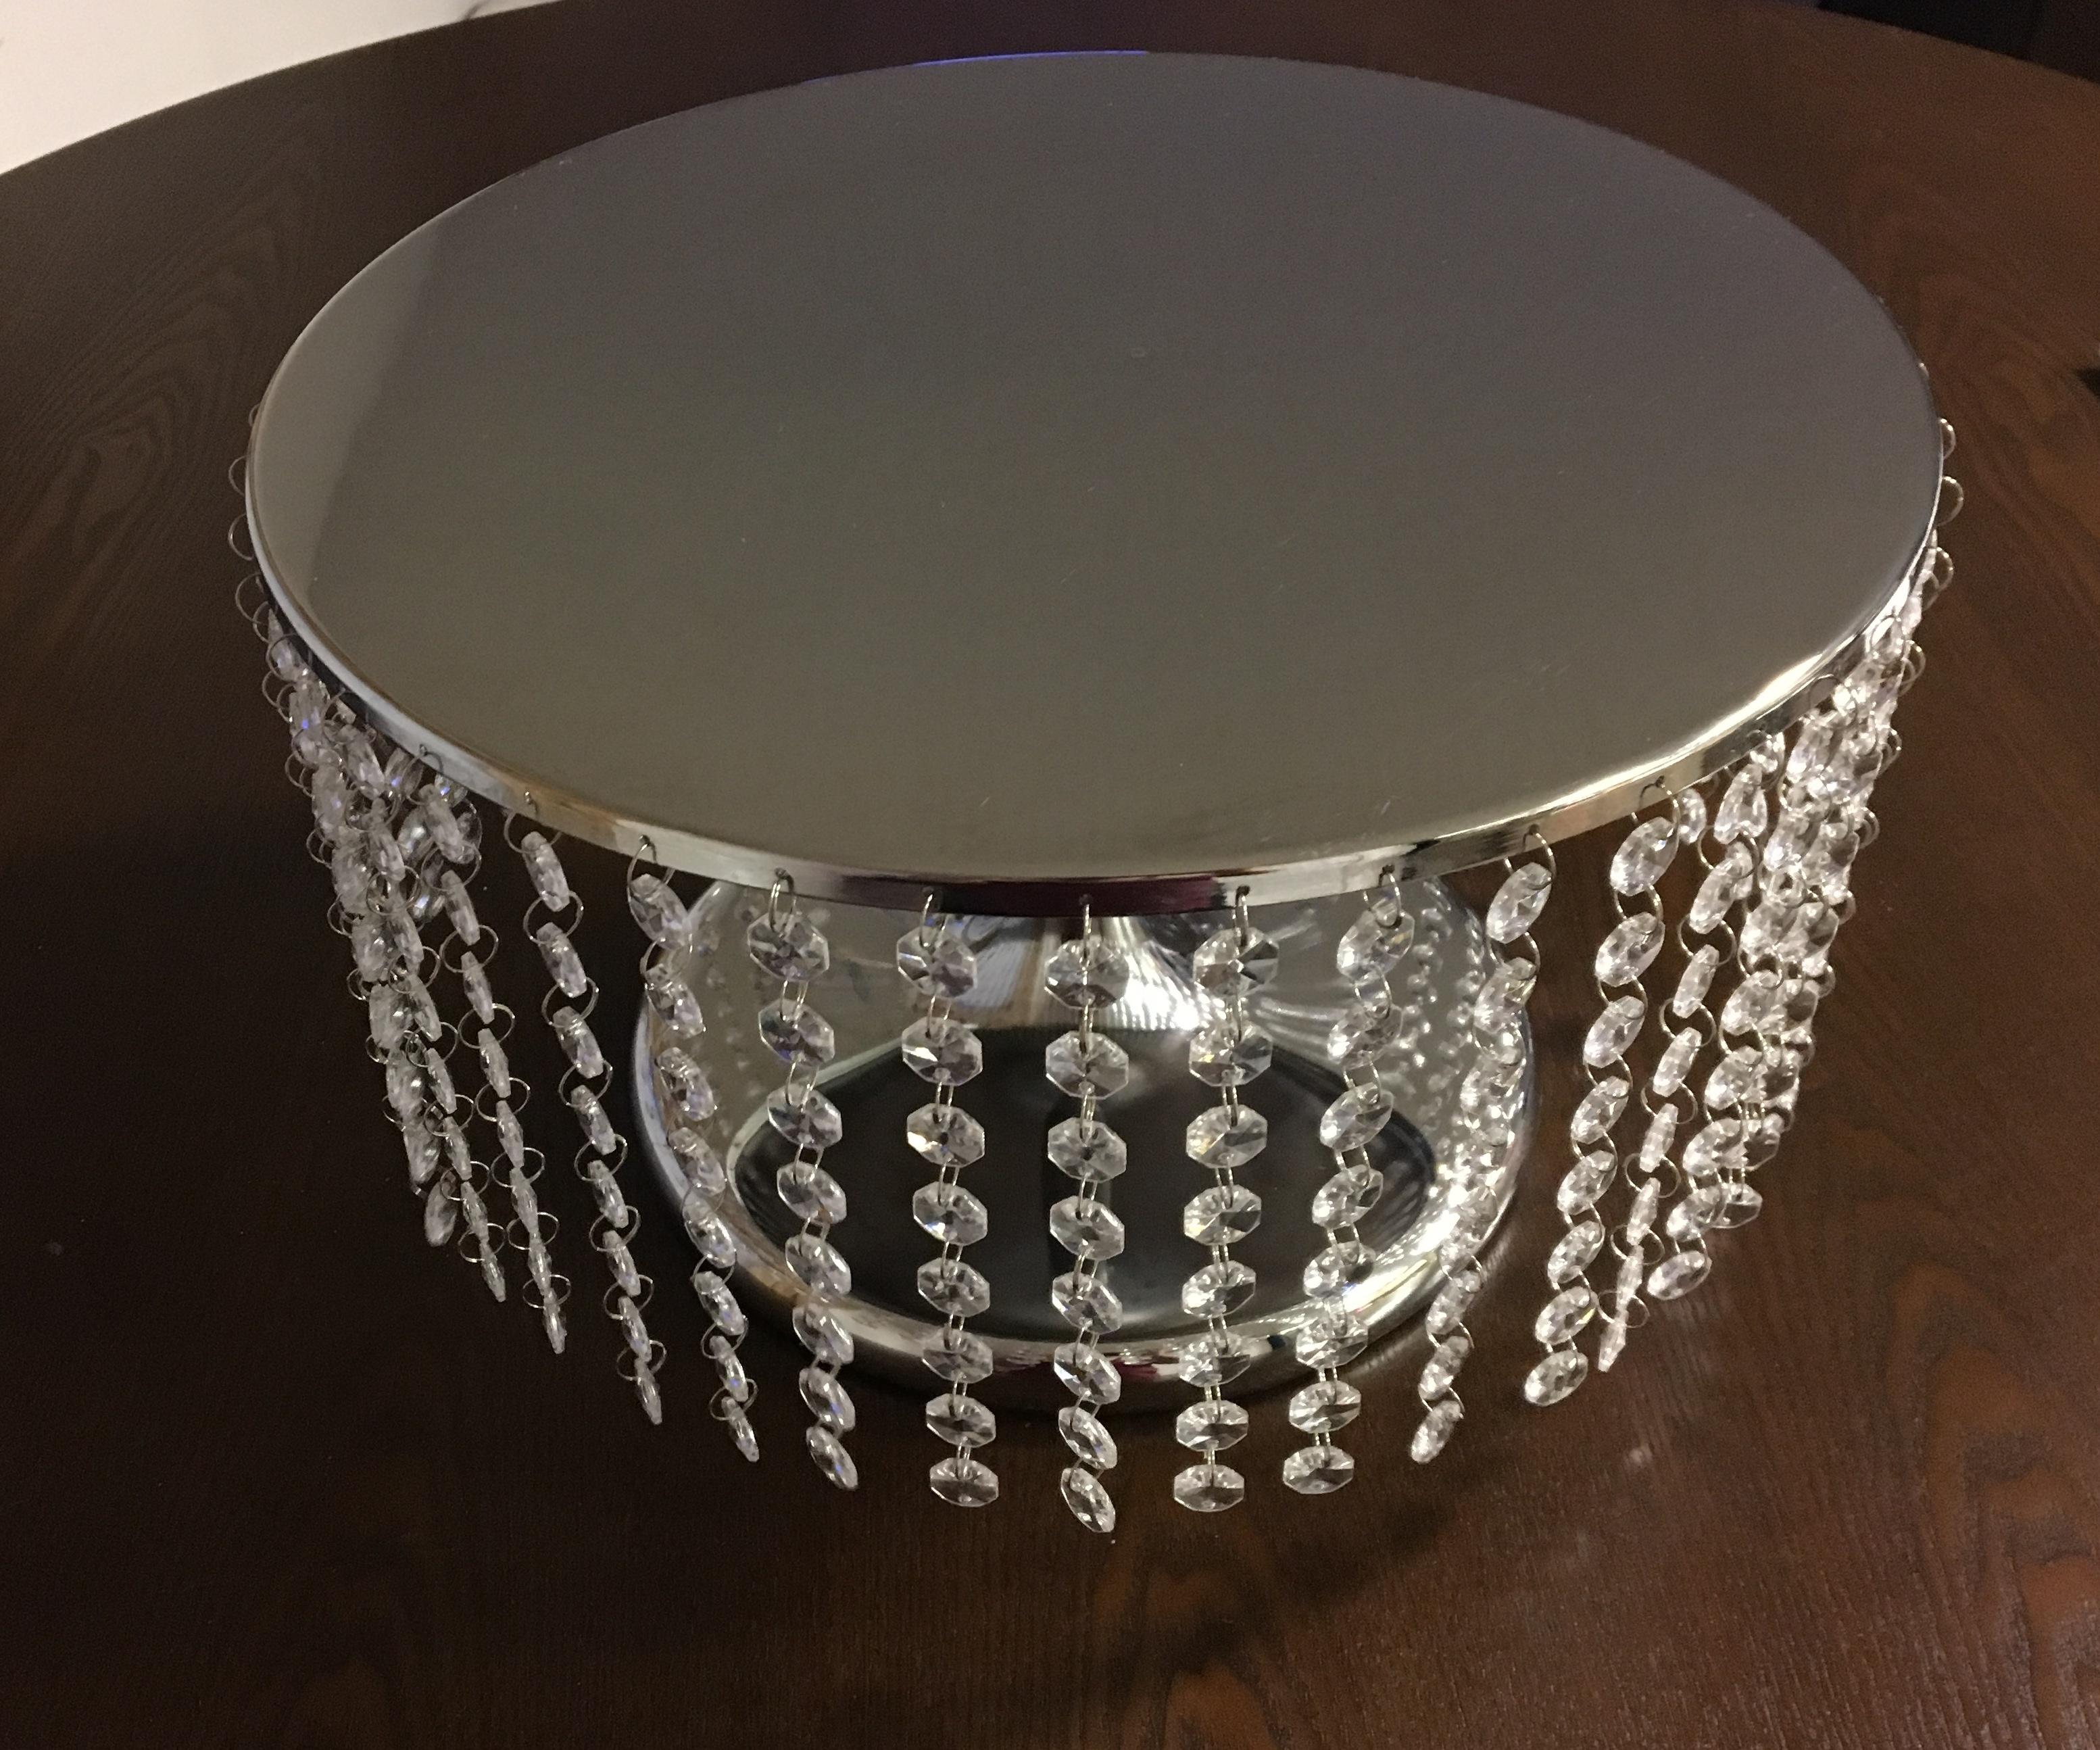 Elegant Jeweled Silver Wedding Cake Stand 13.5 Inch Diameter